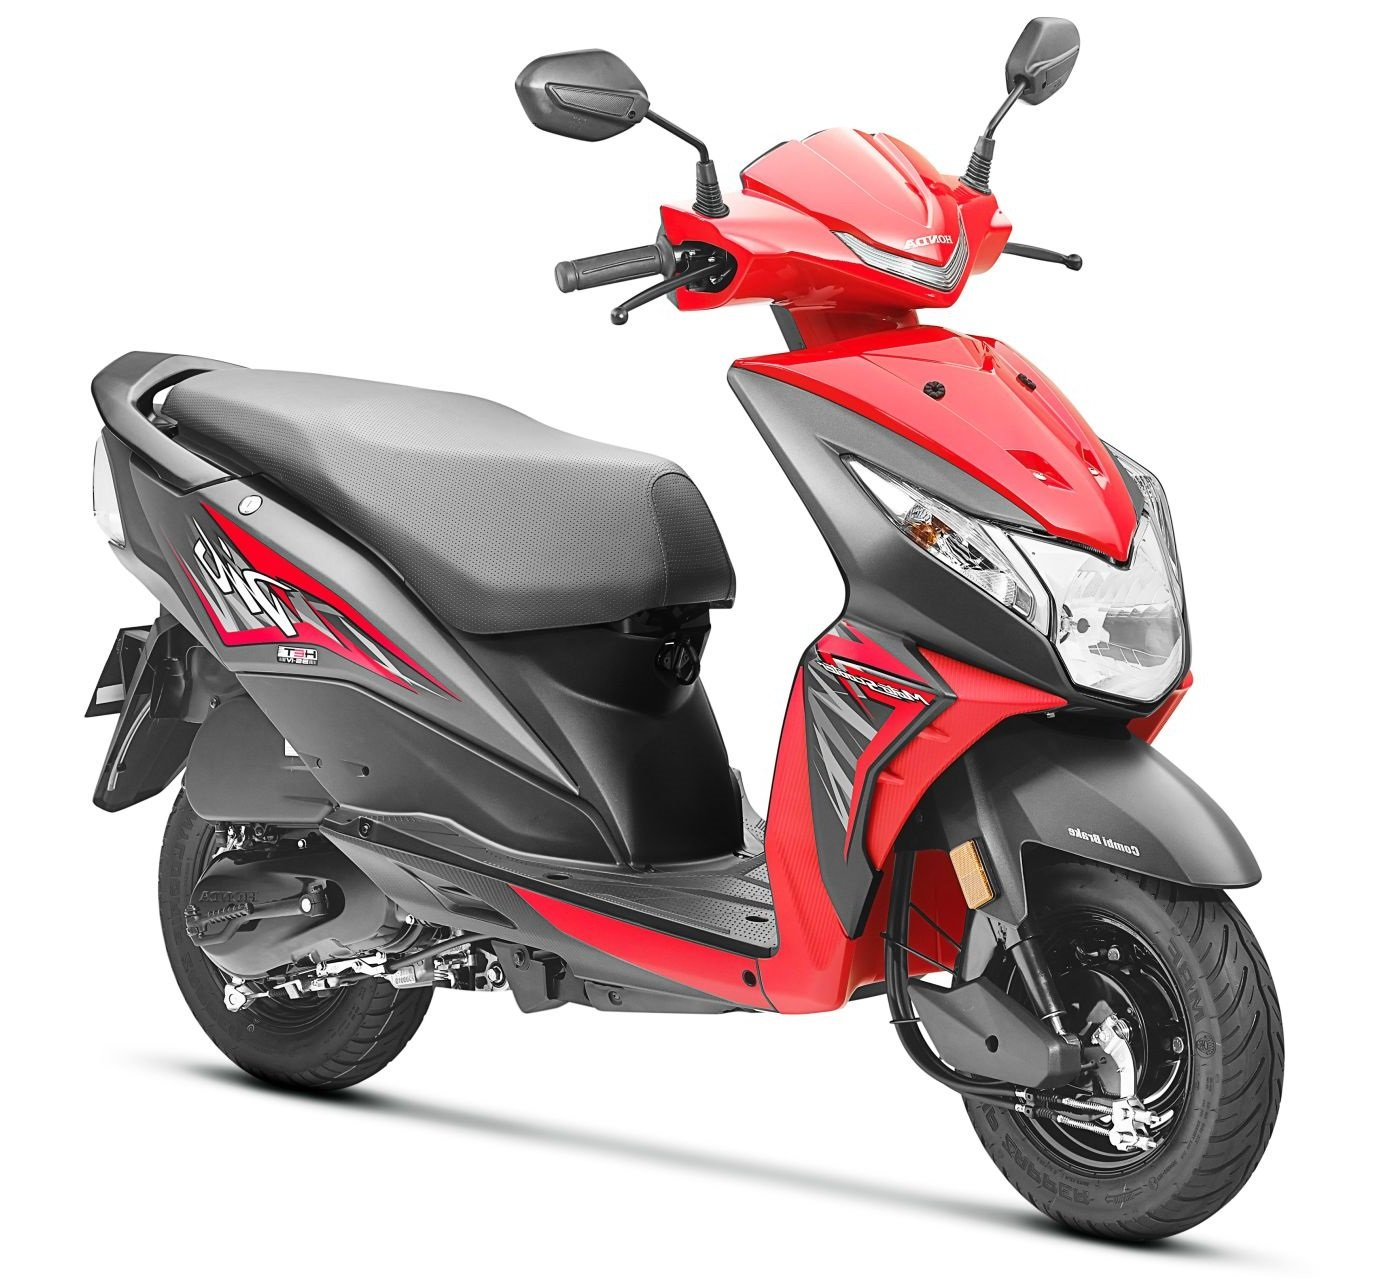 Honda Dio Price in India, Dio Mileage, Images ...